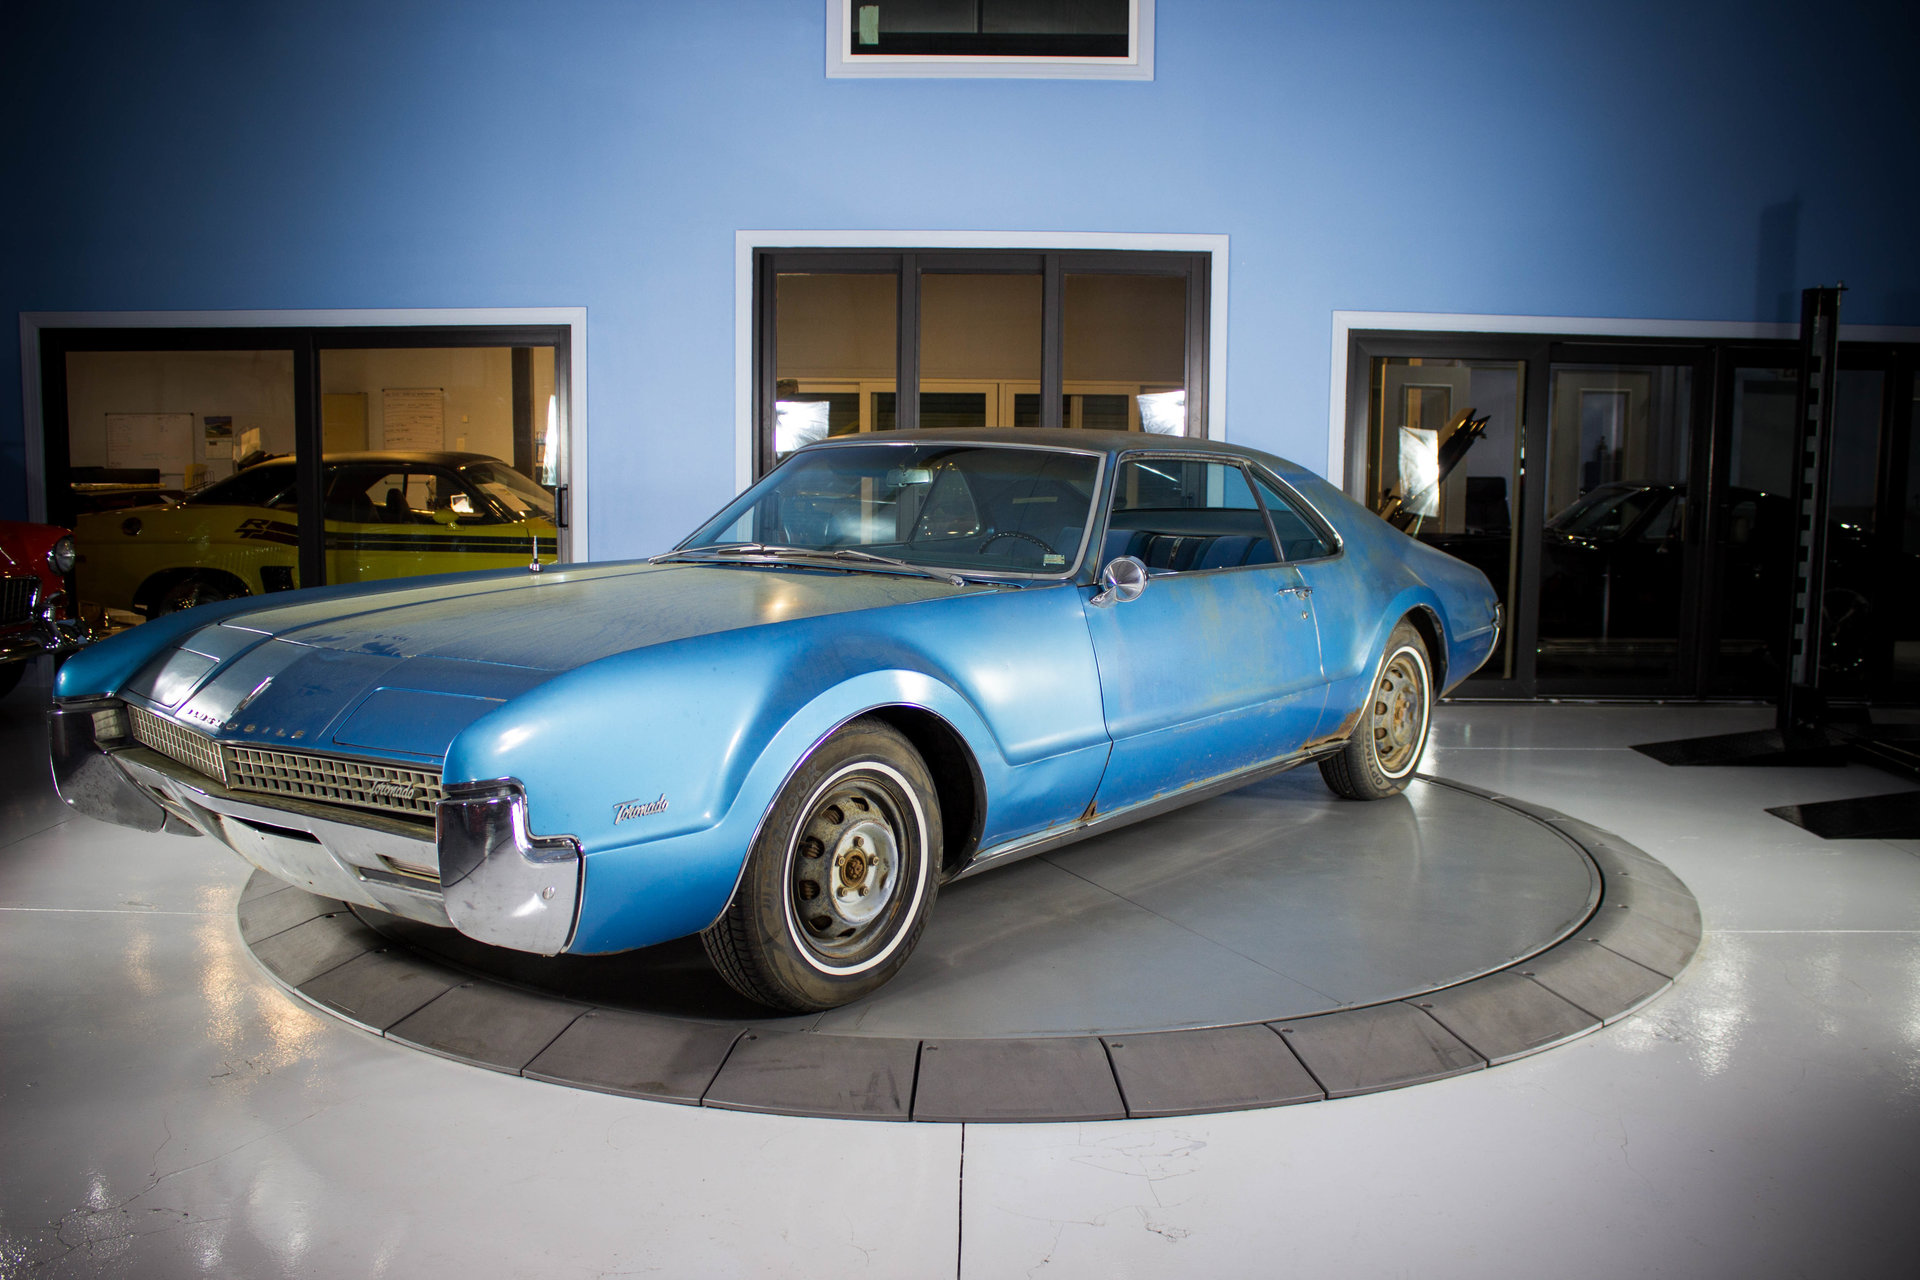 1967 oldsmobile toronado classic cars used cars for. Black Bedroom Furniture Sets. Home Design Ideas